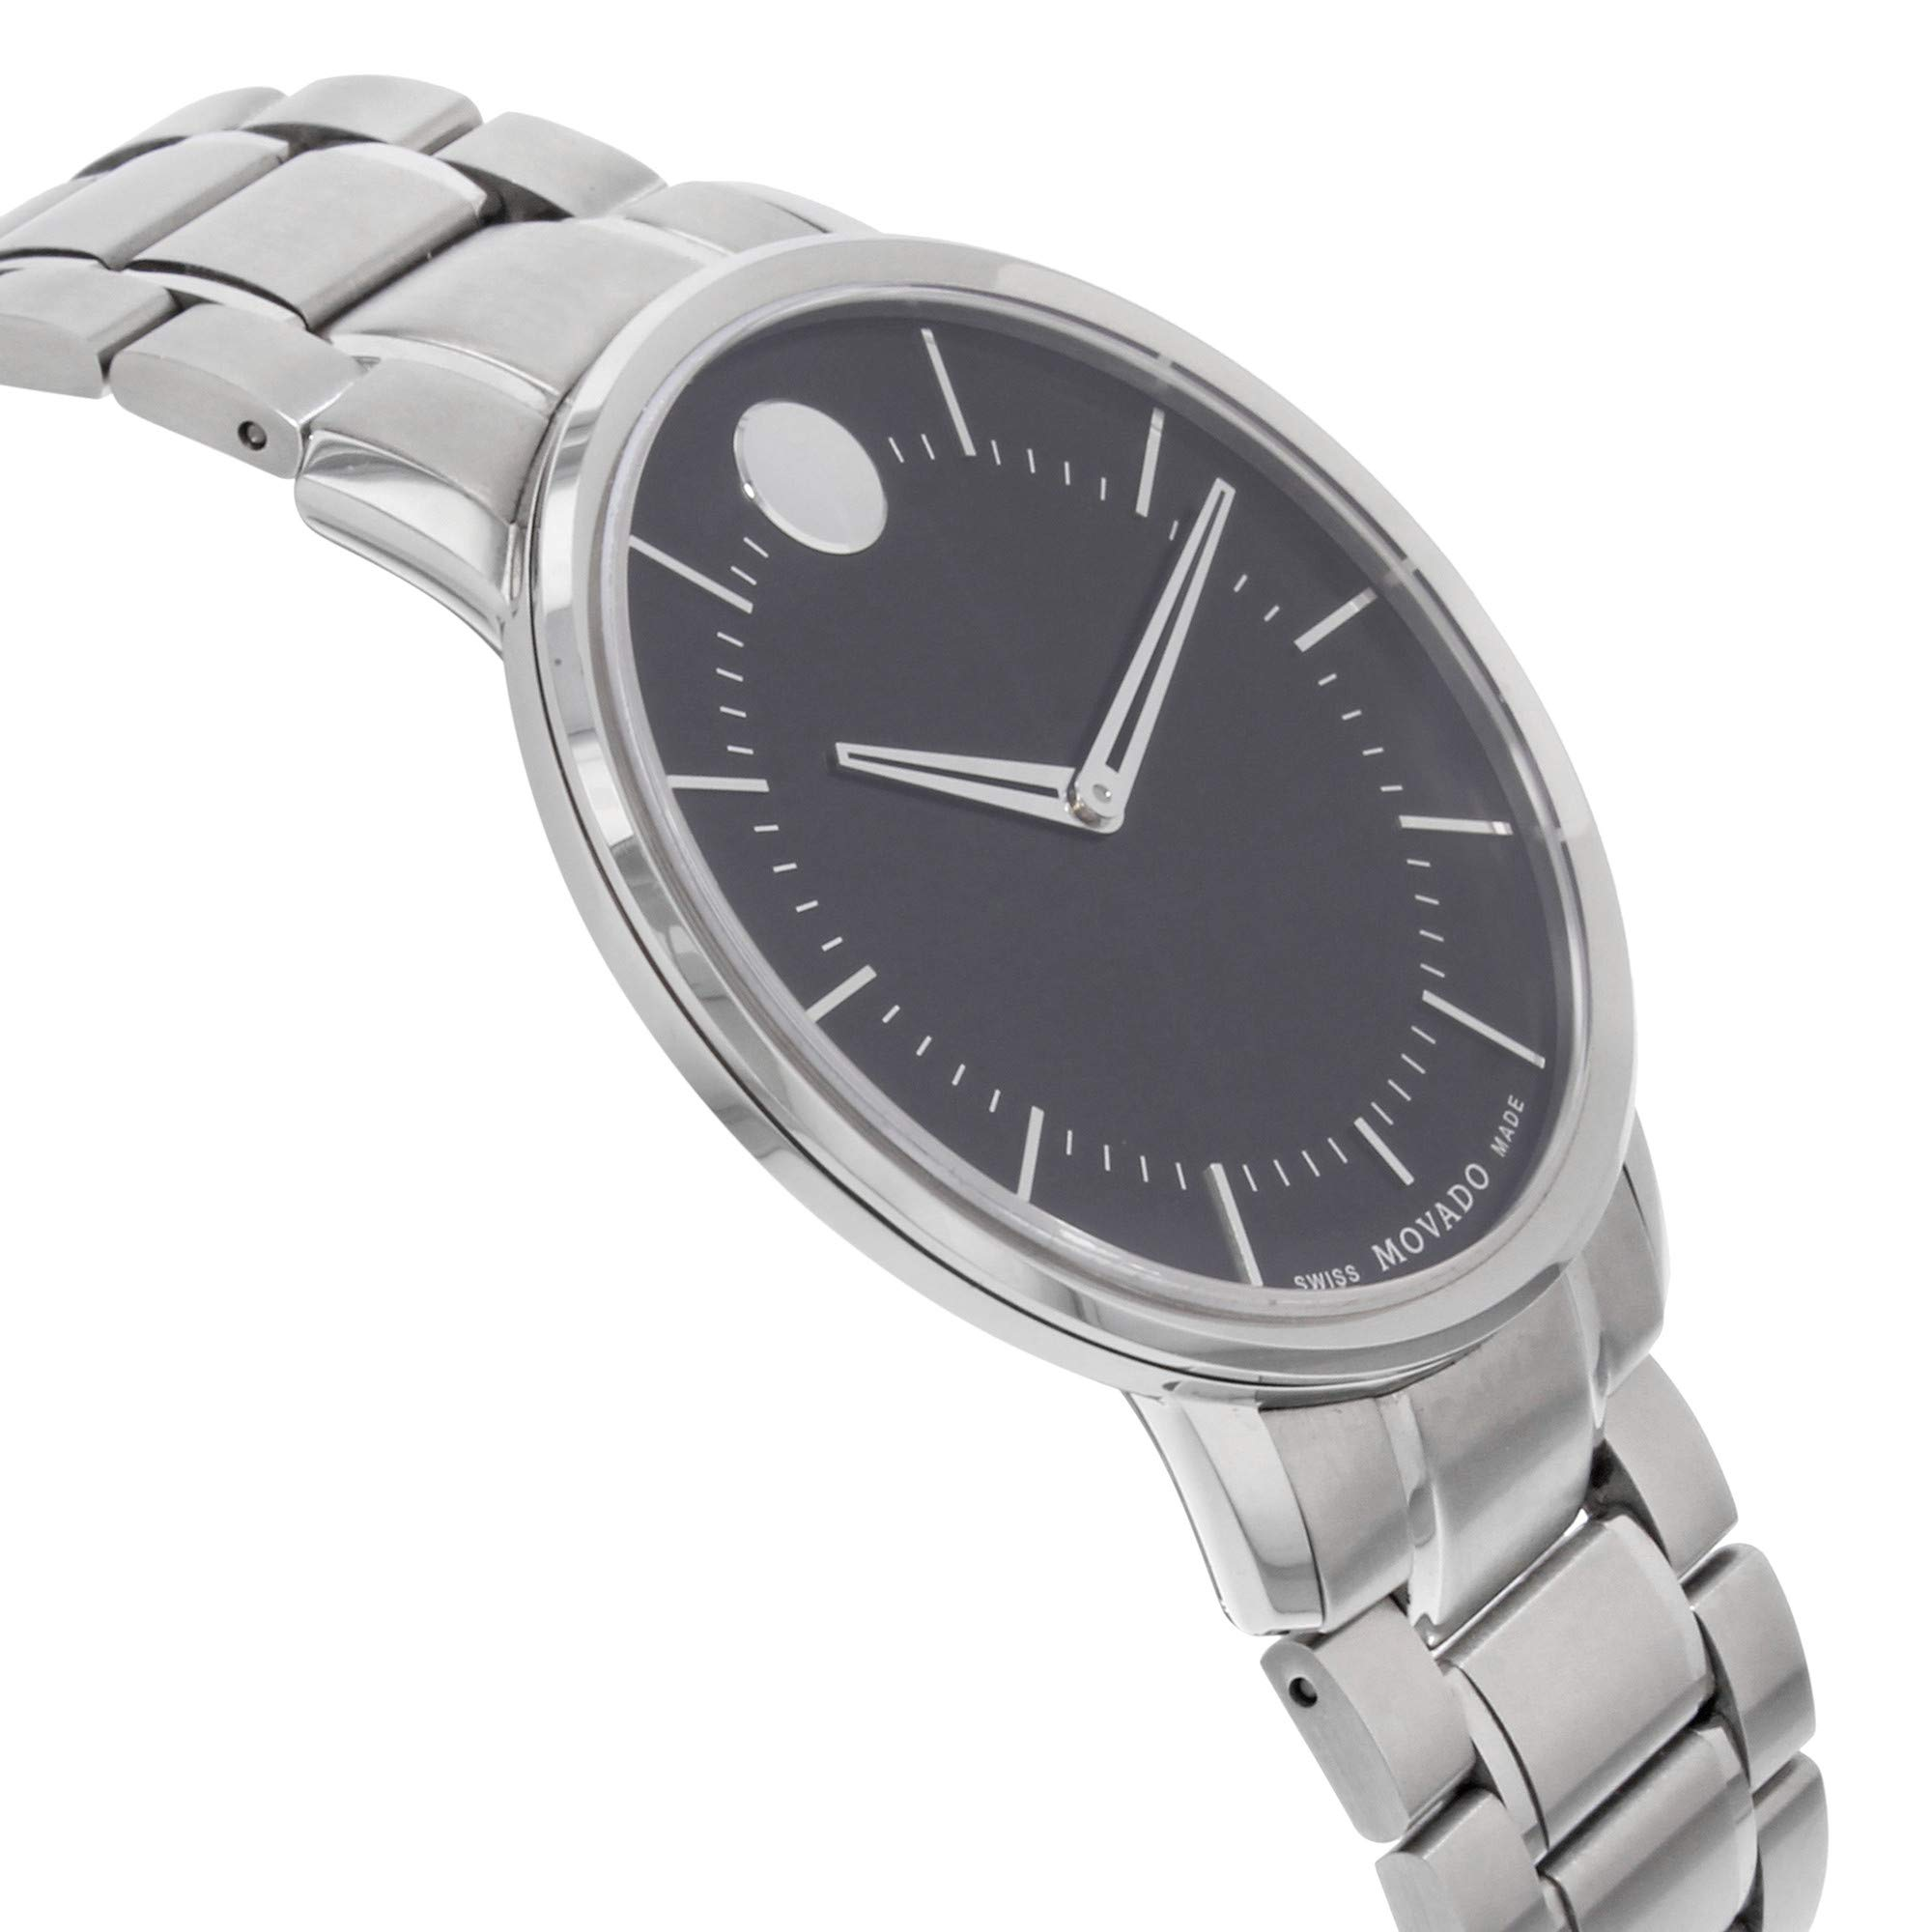 Movado Classic Quartz Male Watch 0606687 (Certified Pre-Owned) by Movado (Image #4)